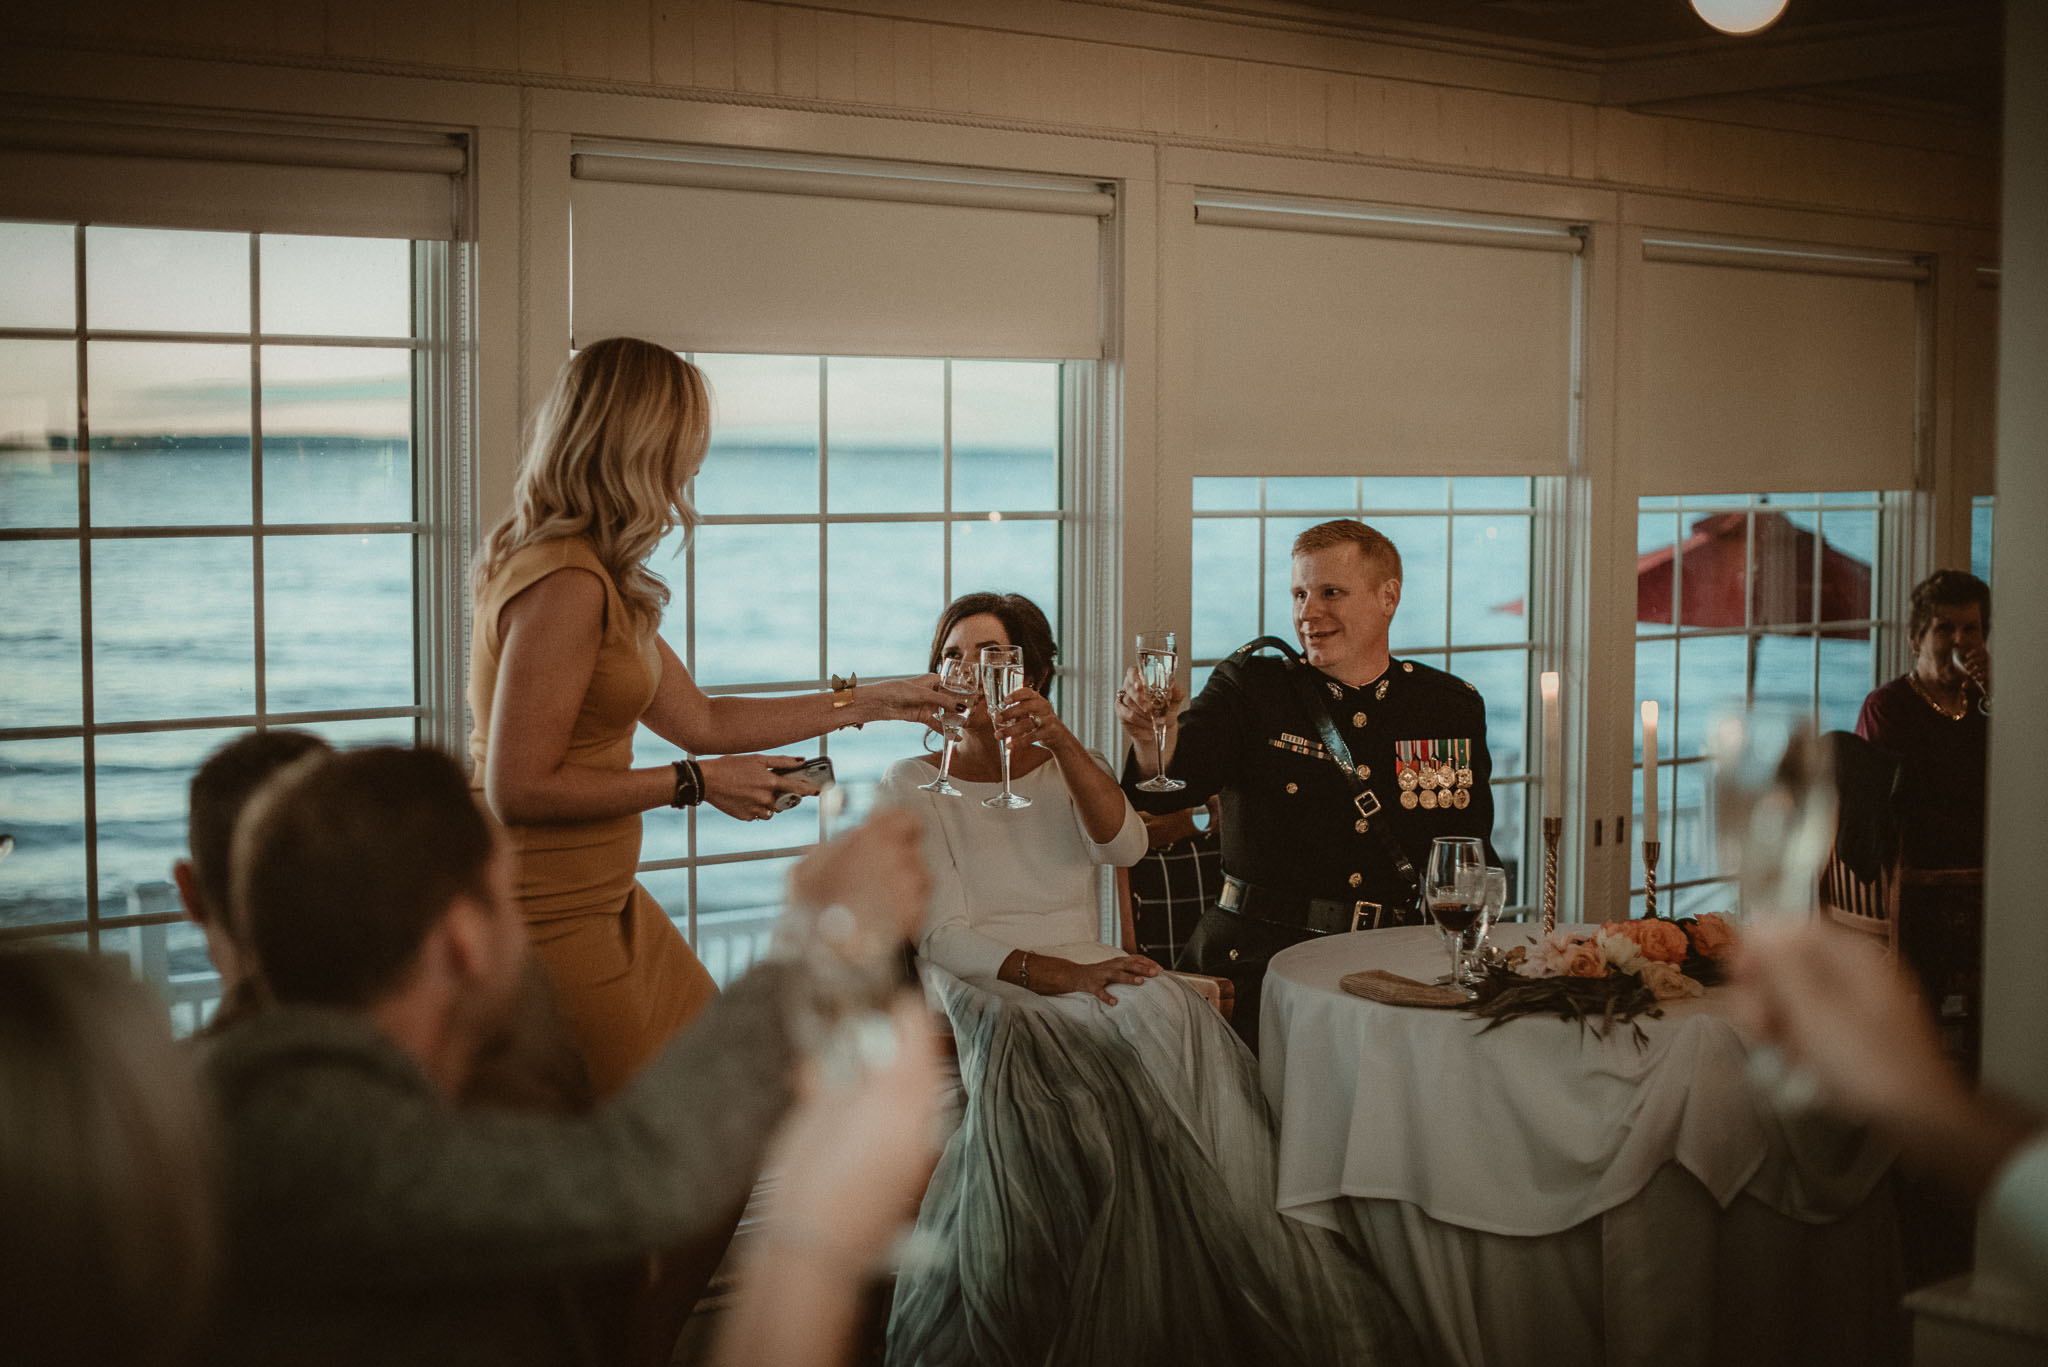 The bride's best friend toasting after giving a hear warming speech.